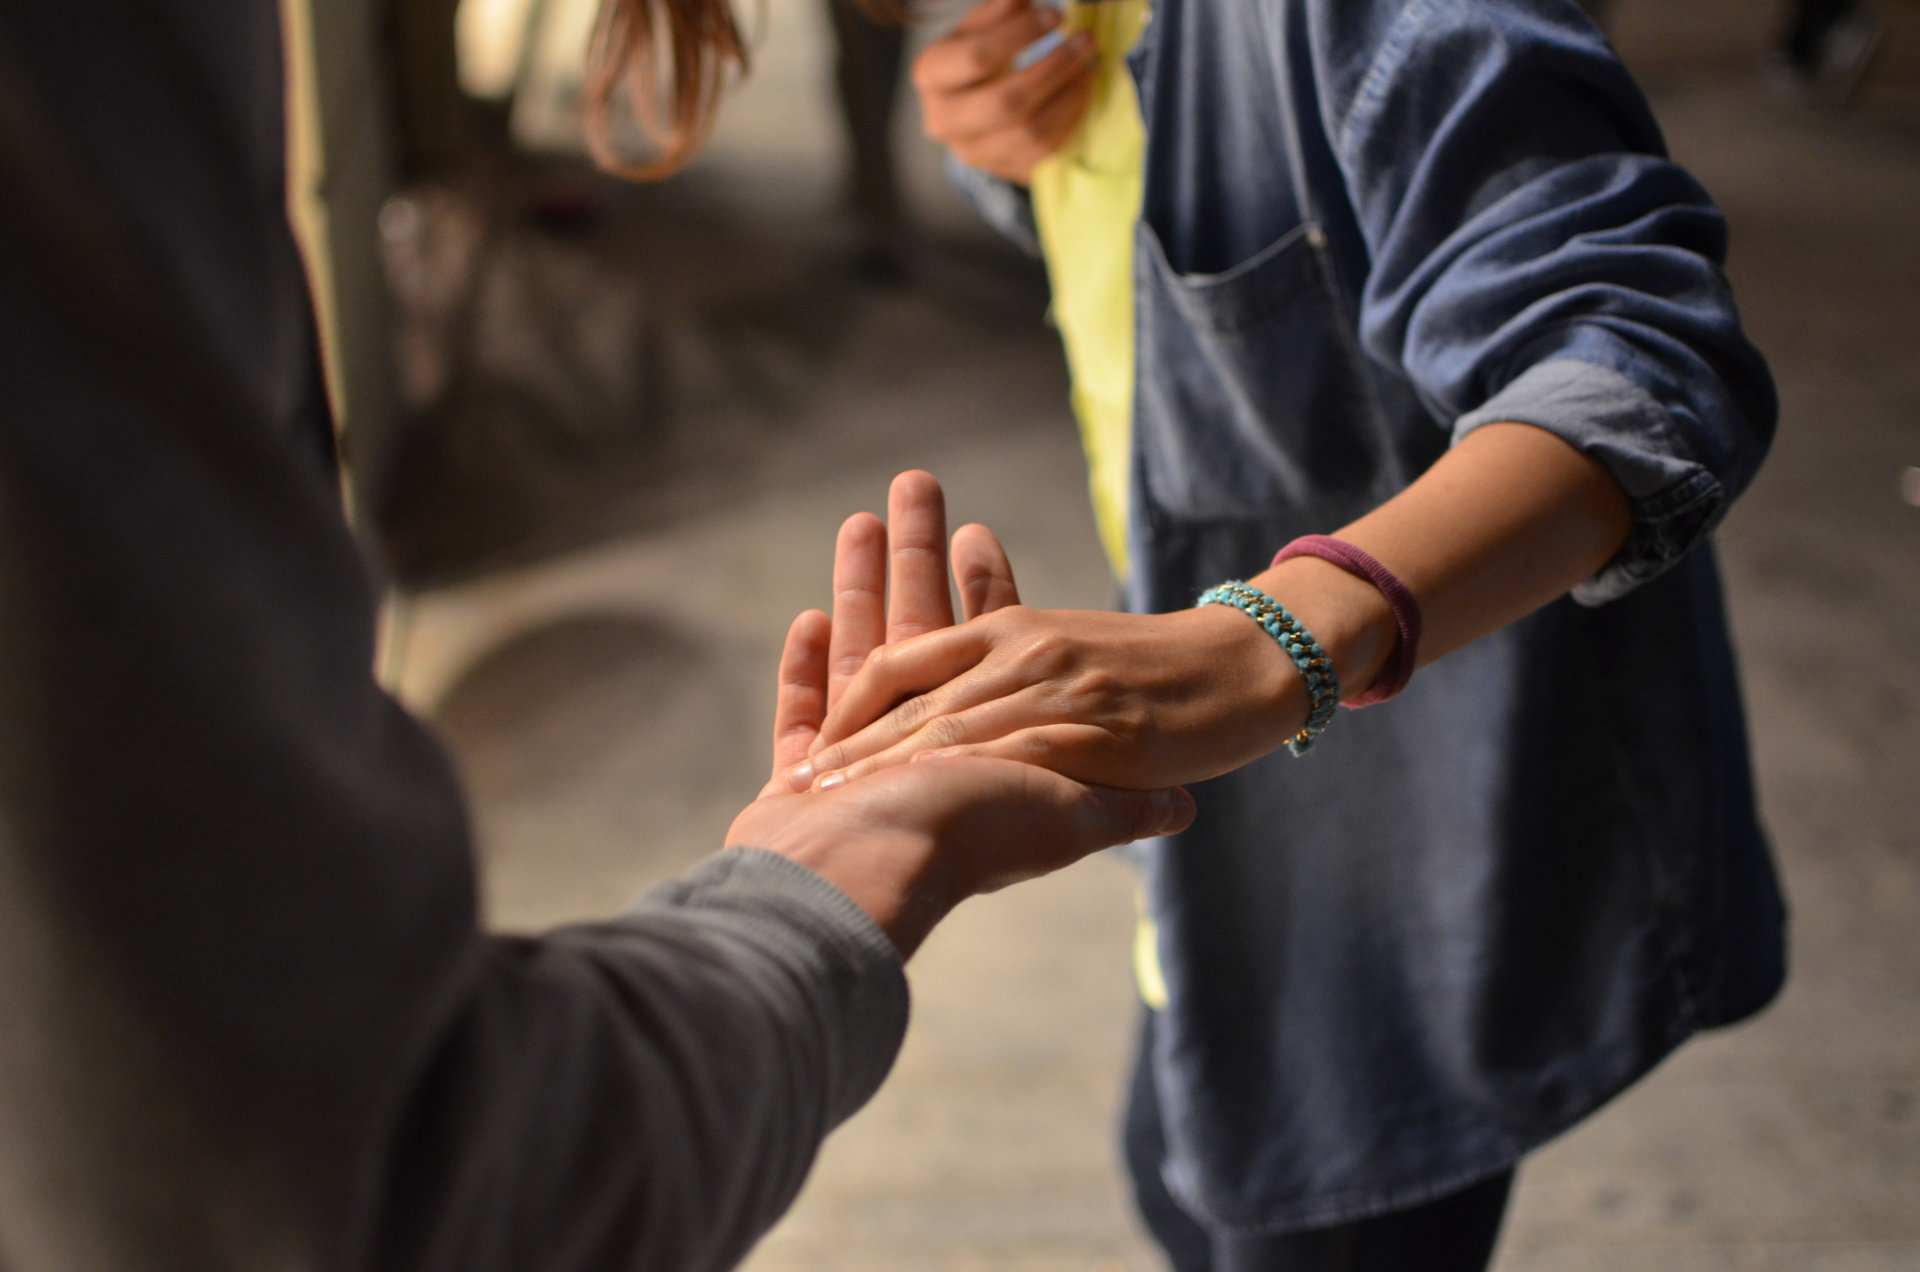 Woman Taking Taking a Man's Hand